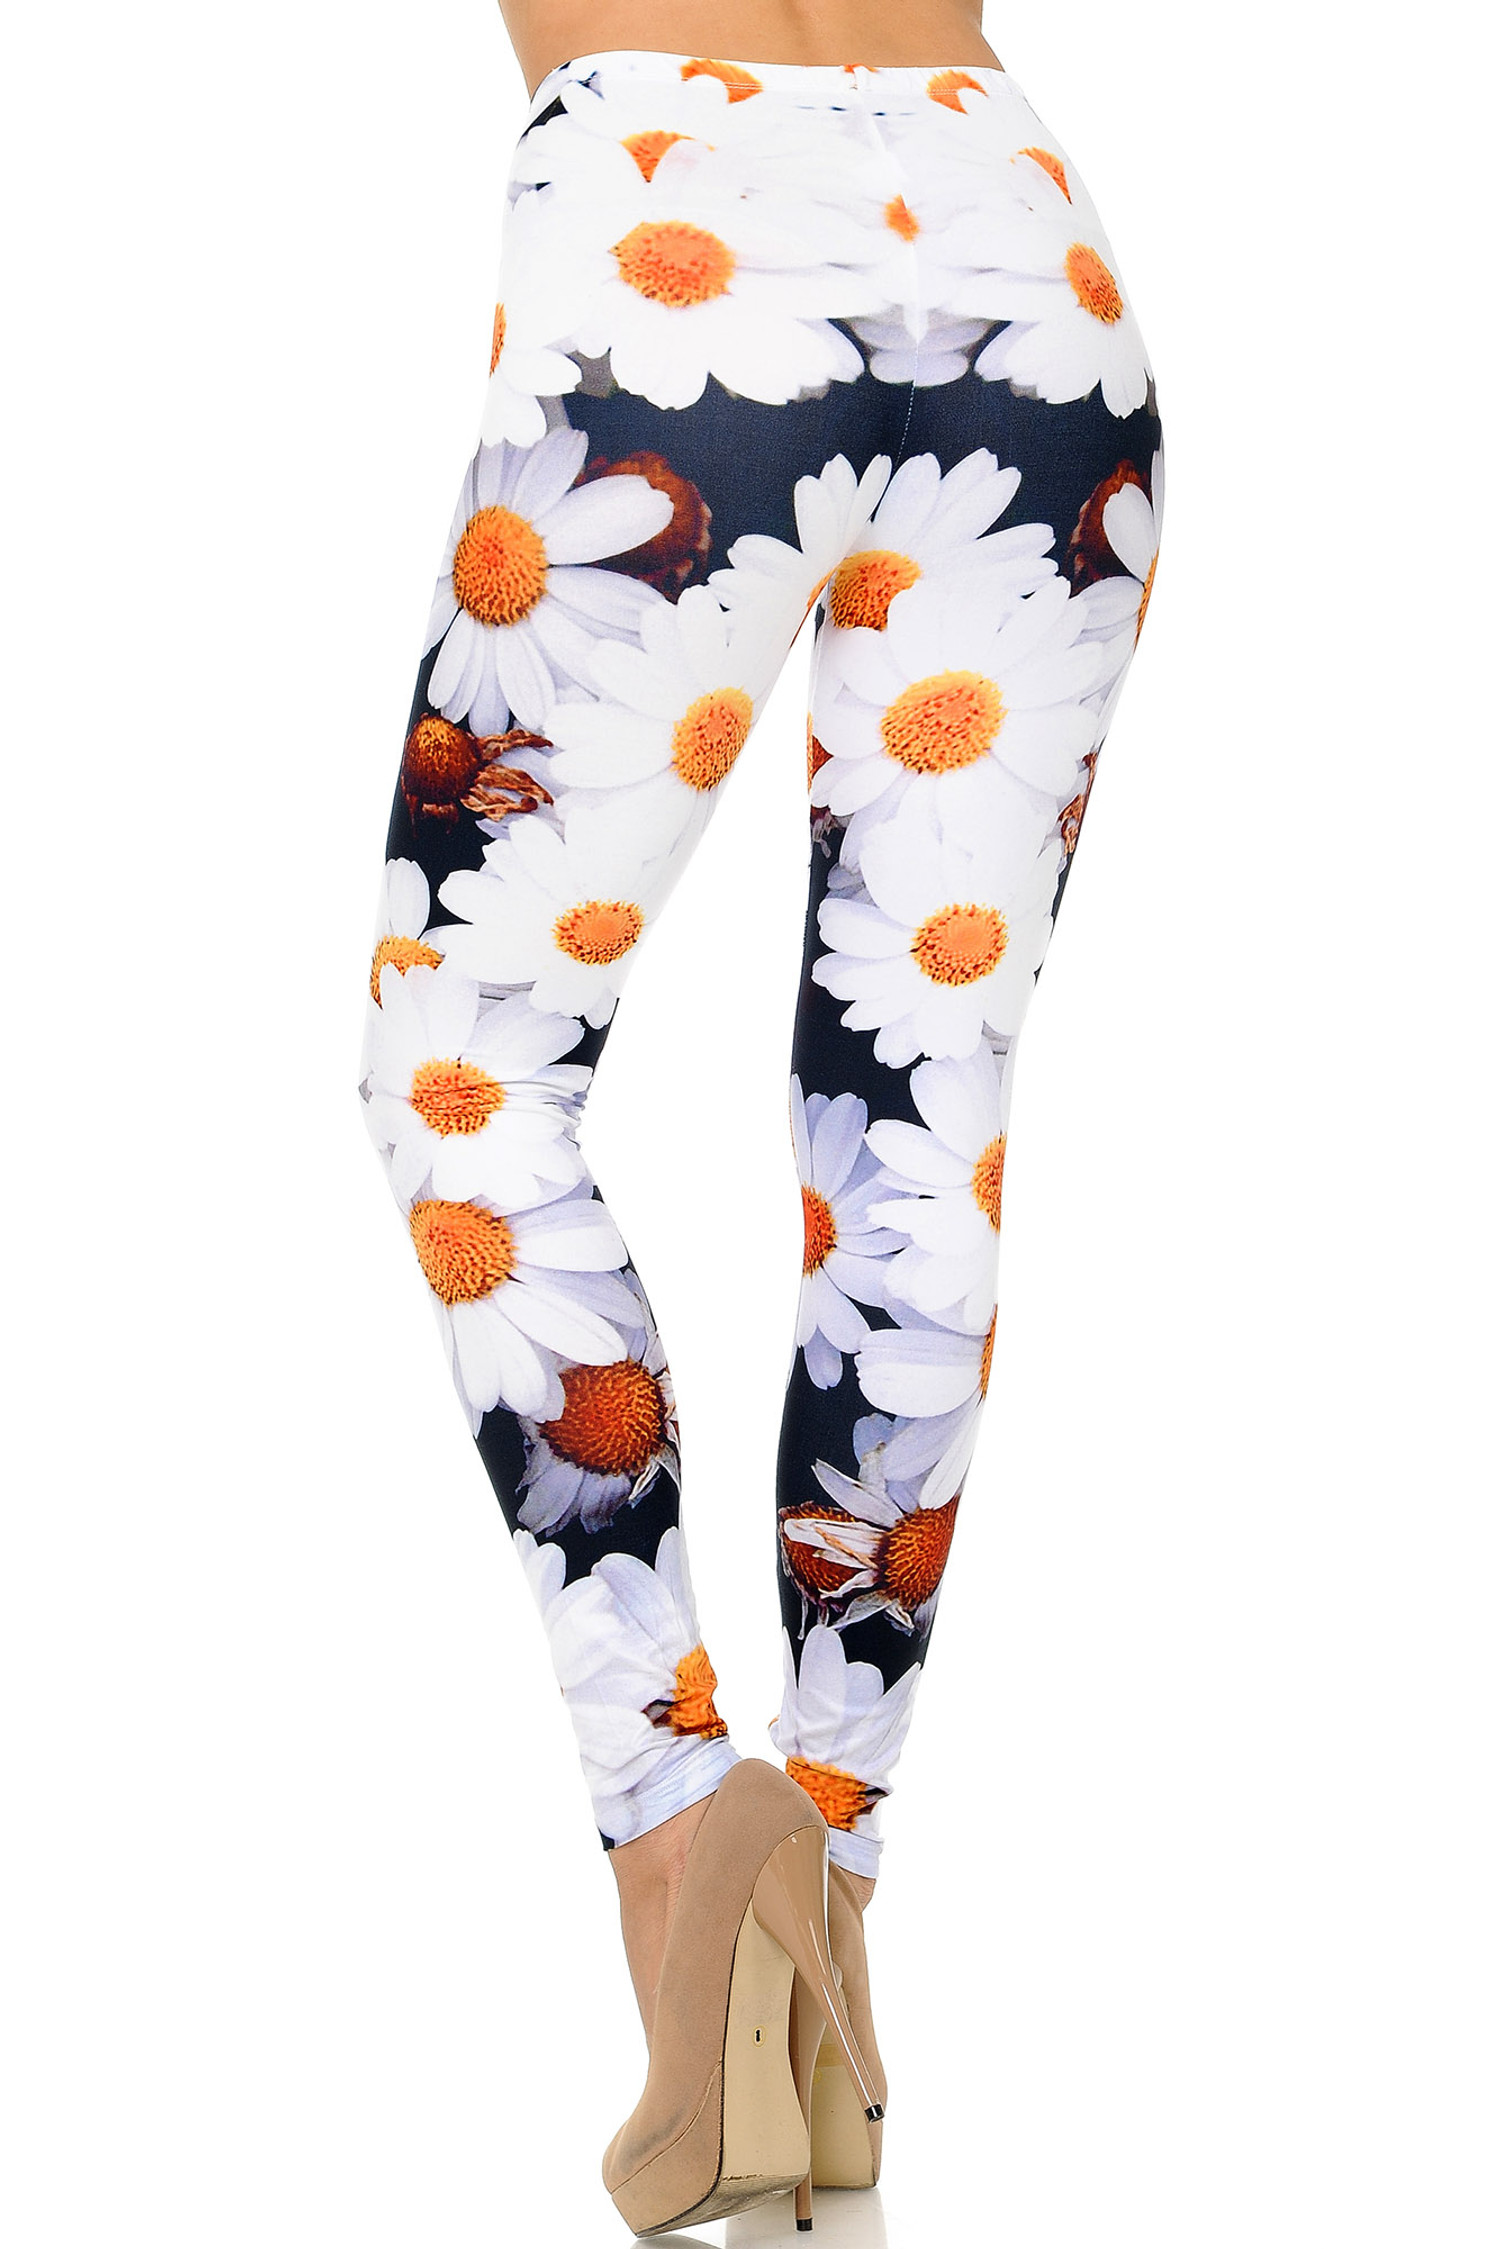 Back side image of Creamy Soft Daisy Leggings - USA Fashion™